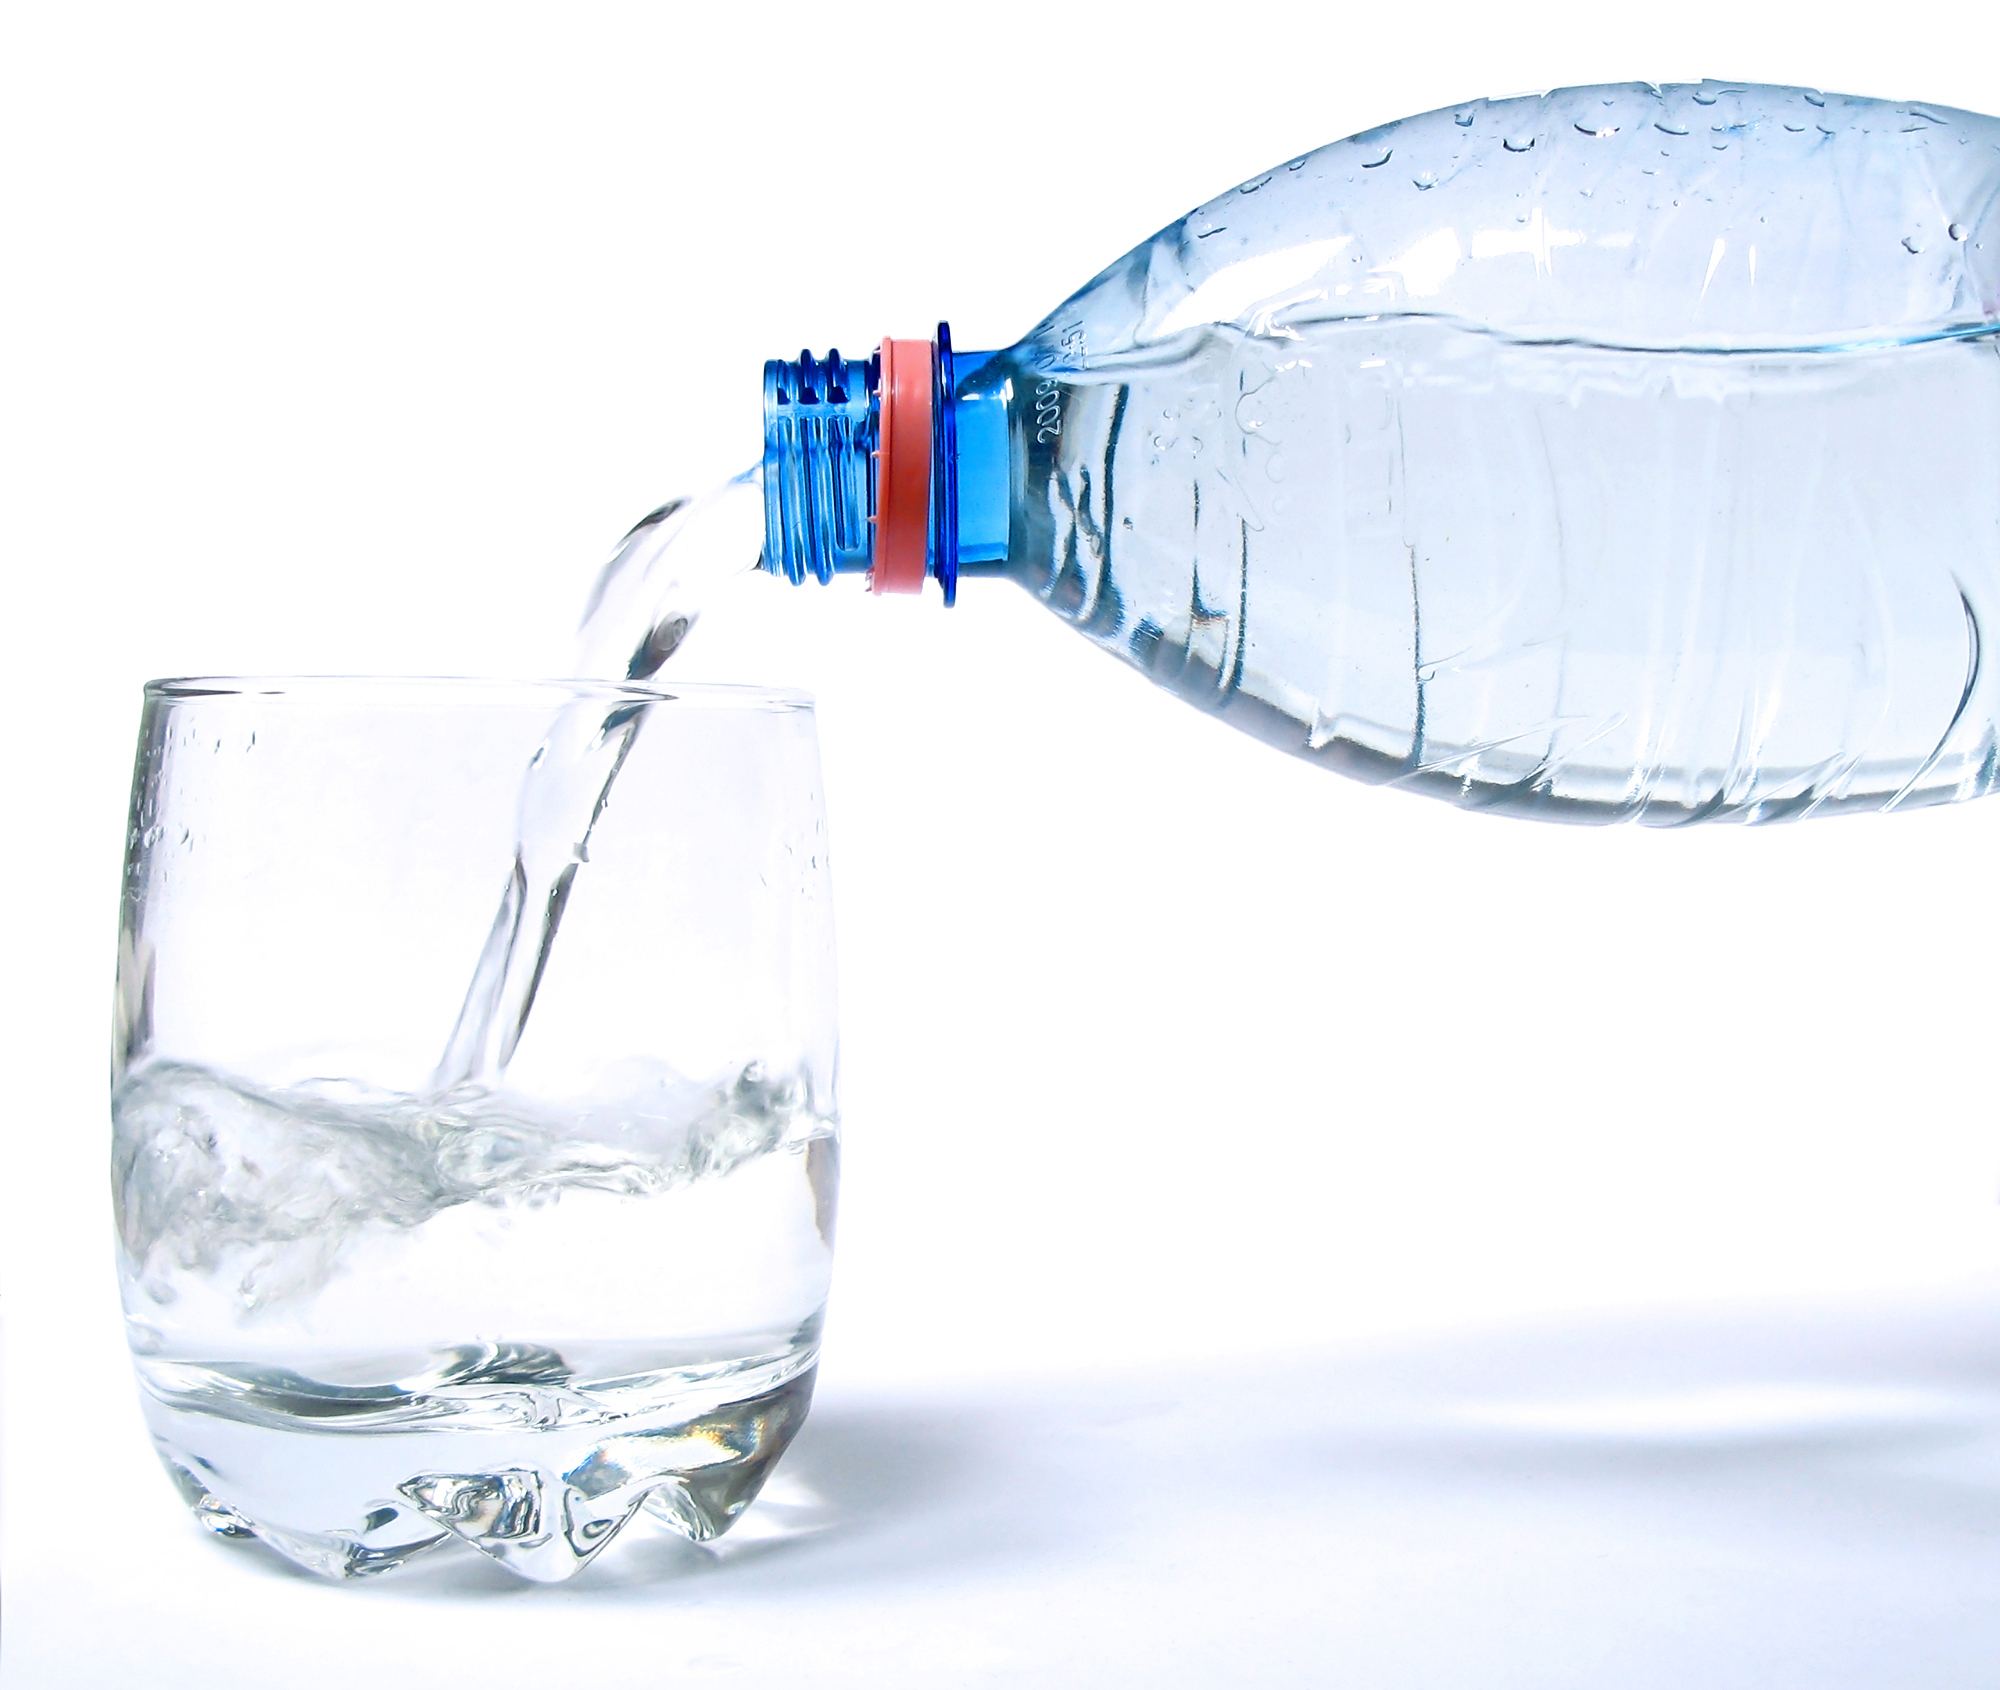 http://images.wikia.com/analytical/images/6/67/Waterbottle.jpg